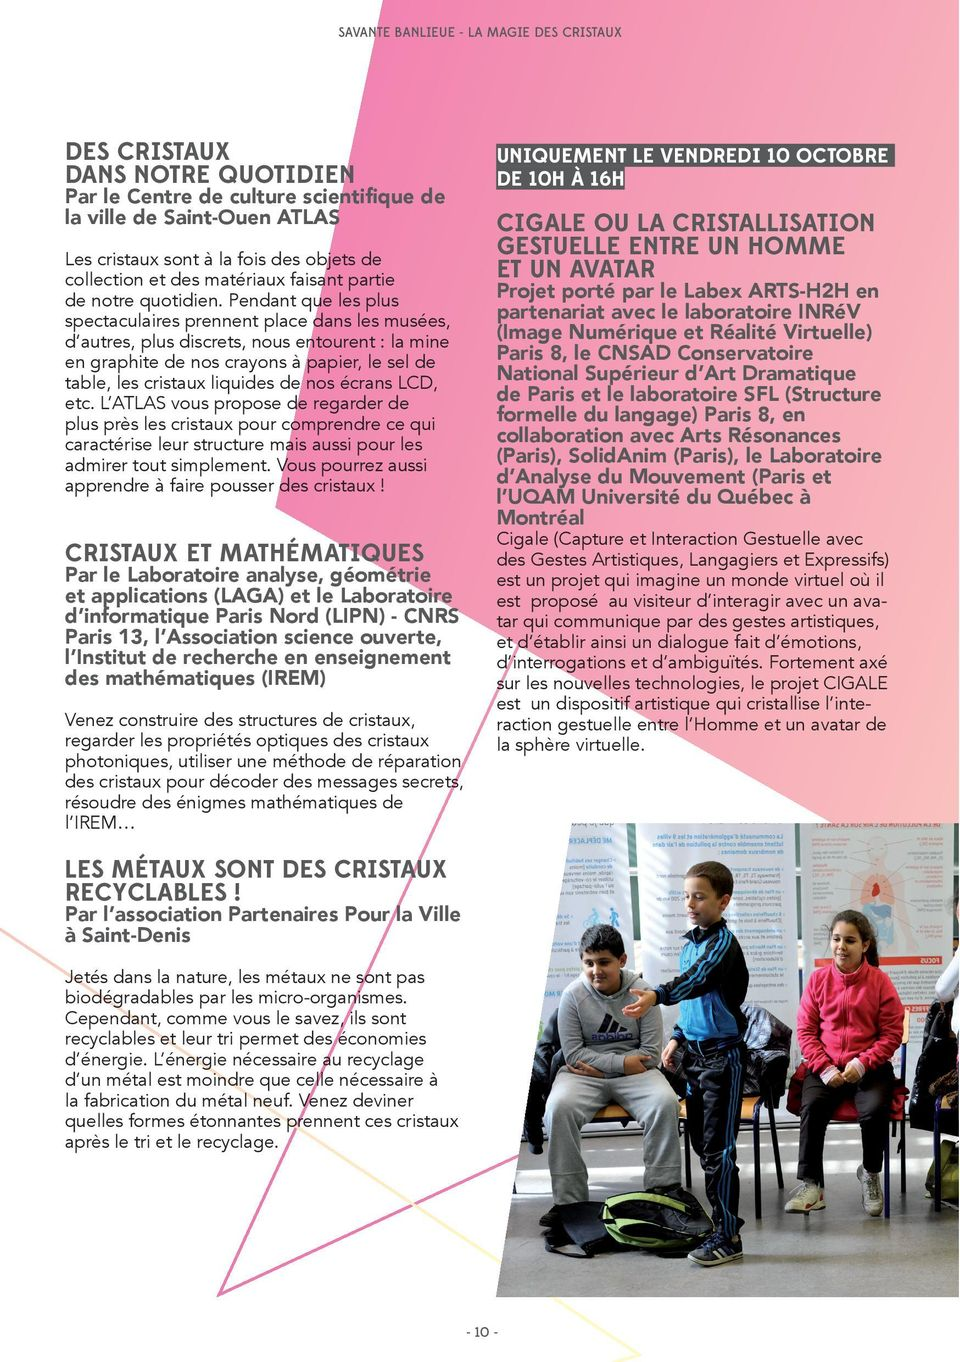 CRISTAUX ET MATHÉMATIQUES Par le Laboratoire analyse, géométrie et applications (LAGA) et le Laboratoire d informatique Paris Nord (LIPN) - CNRS Paris 13, l Association science ouverte, l Institut de